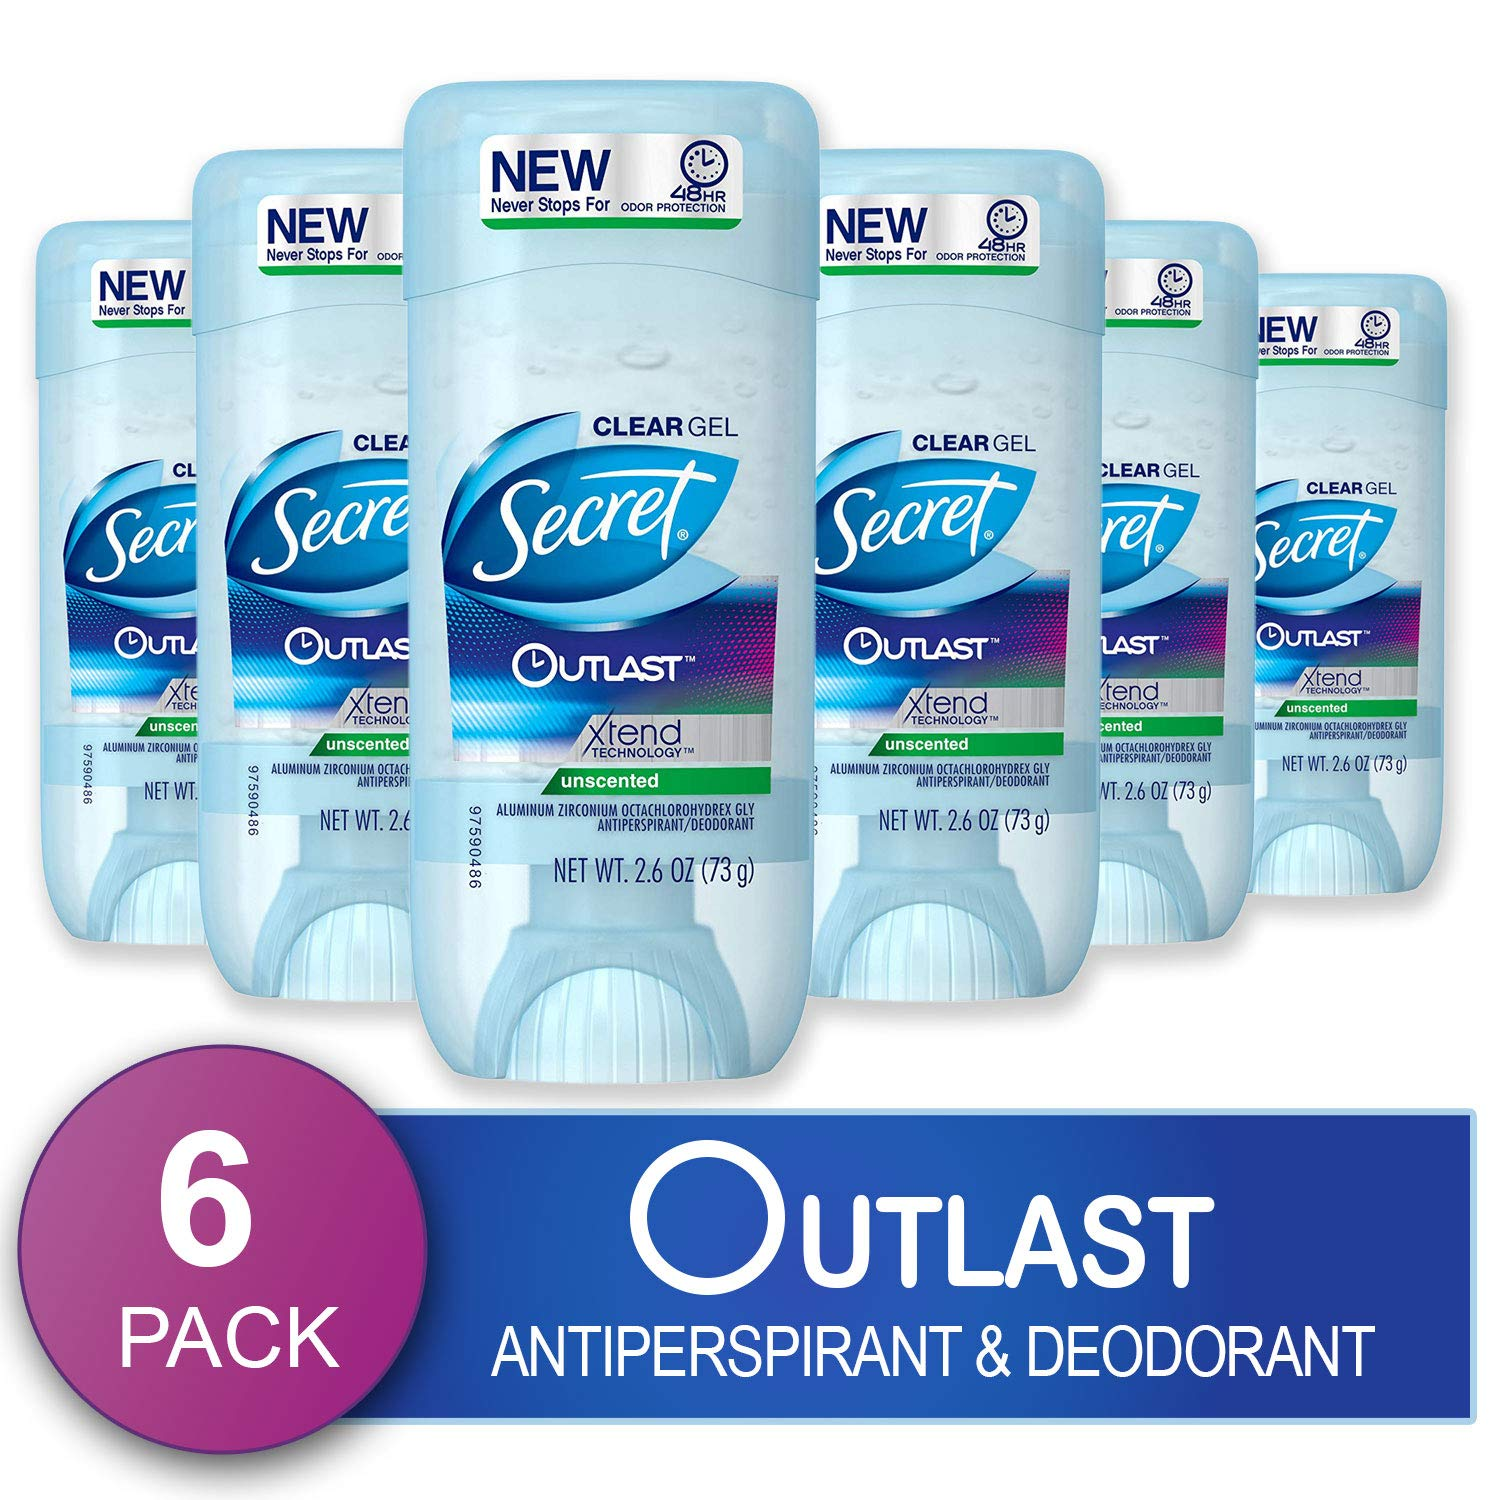 Secret Antiperspirant Deodorant for Women, Unscented, Clear Gel, Outlast Xtend, 2.6 Oz (Pack of 6) (Packaging May Vary) by Secret